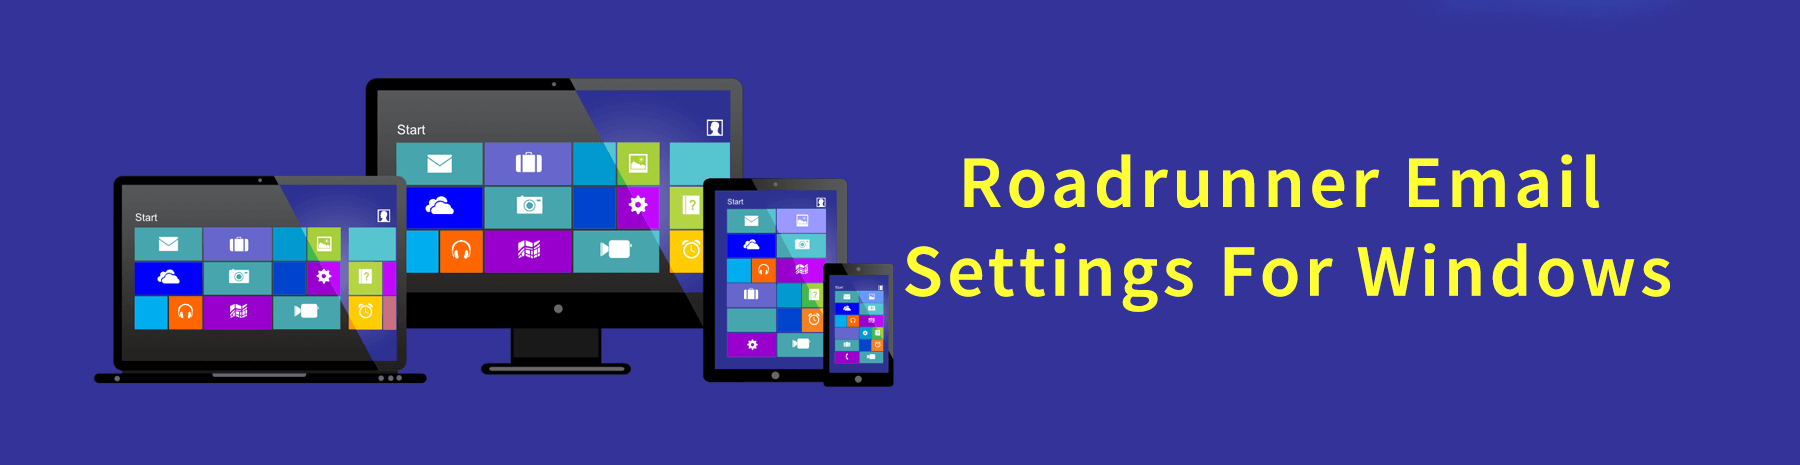 Roadrunner Email Settings For Windows